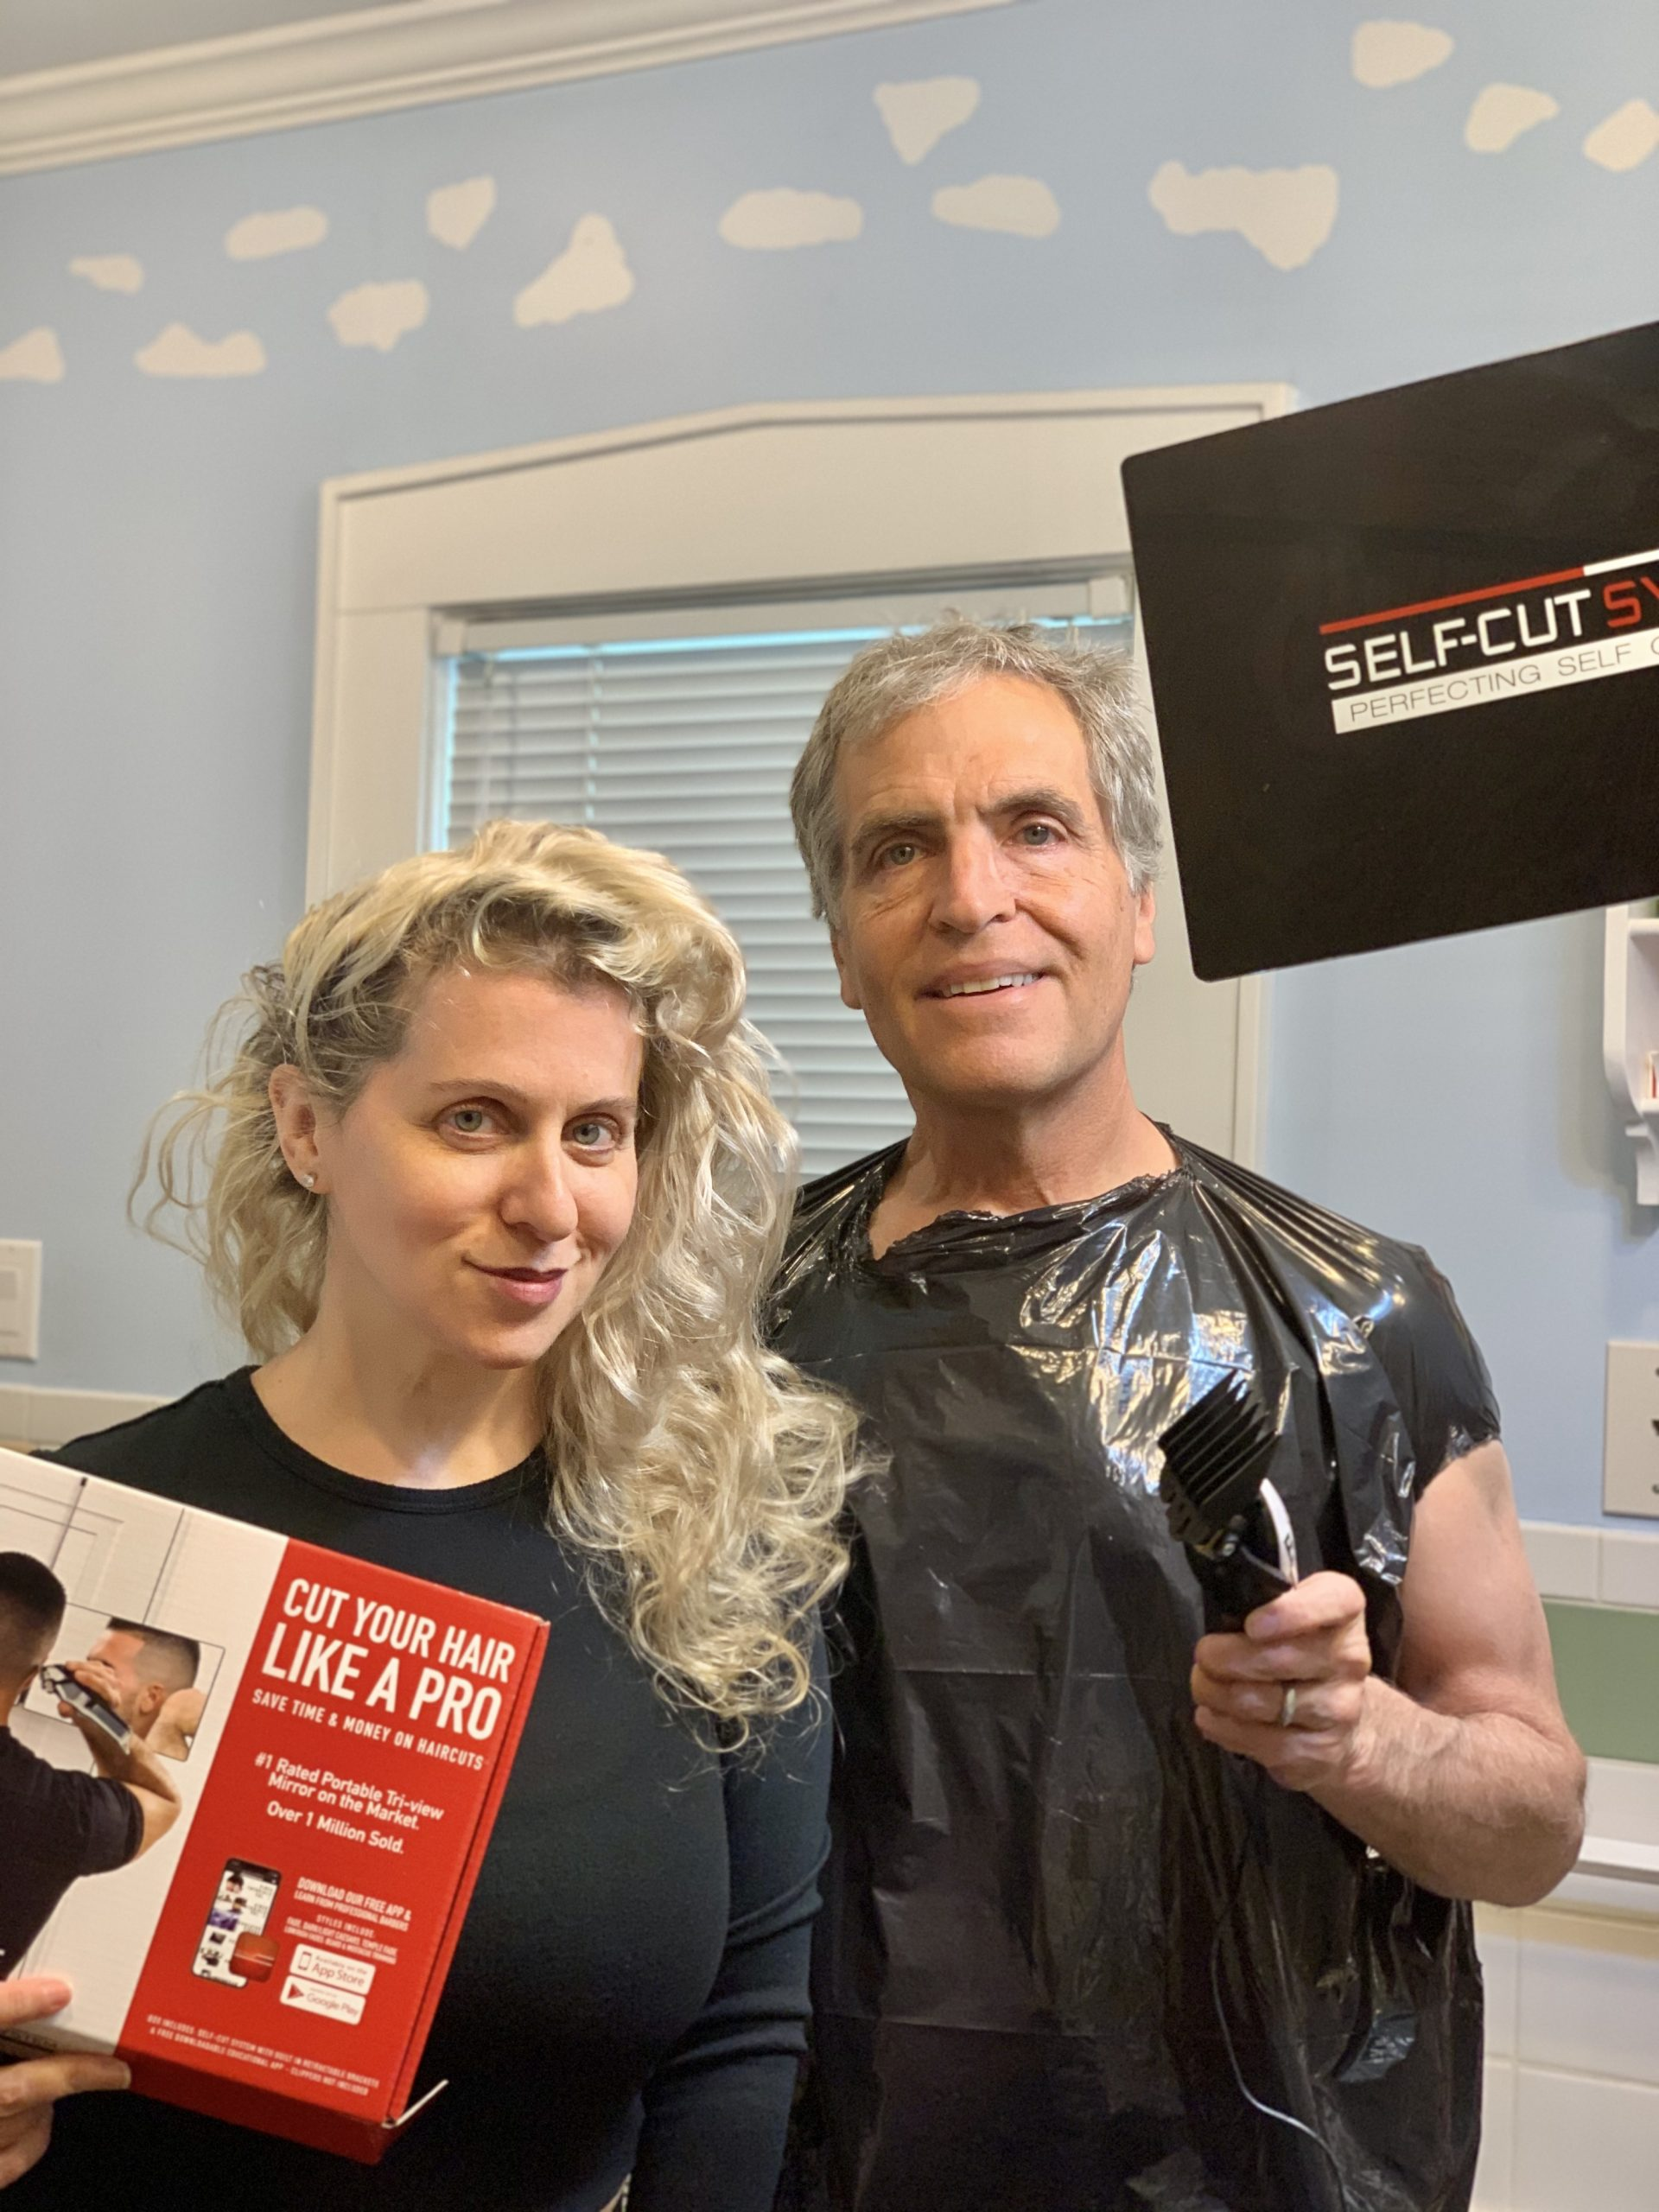 Because of COVID-19, and self-isolation, barbershops 💈 and salons have been shut down Nationwide. Millions are turning to @selfcutsystem and products to cut 💇♂️ and style their own hair. shop 🛒 for yours now https://selfcutsystem.com/ #linkinbio  Swipe right to check out this #SelfCutSystem in action -it is the perfect Father's Day gift for the dad who is observing stay at home rules !